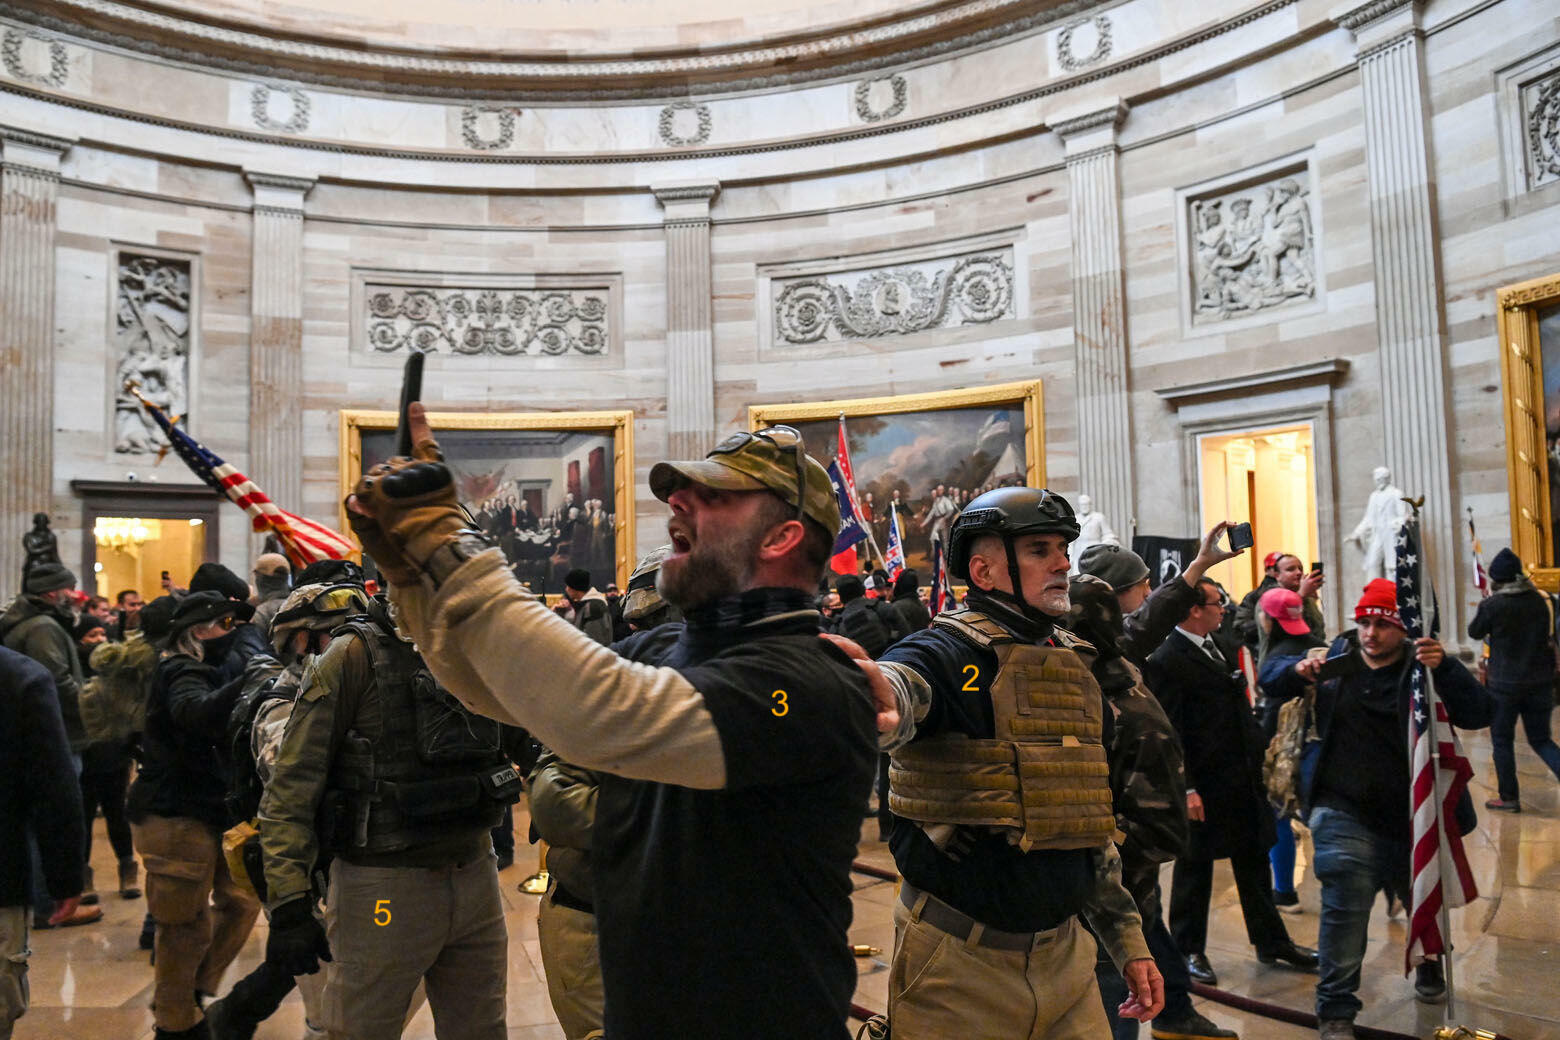 In an image by photographer Saul Loeb widely shared on social media, militia members take pictures in the atrium of the Capitol.